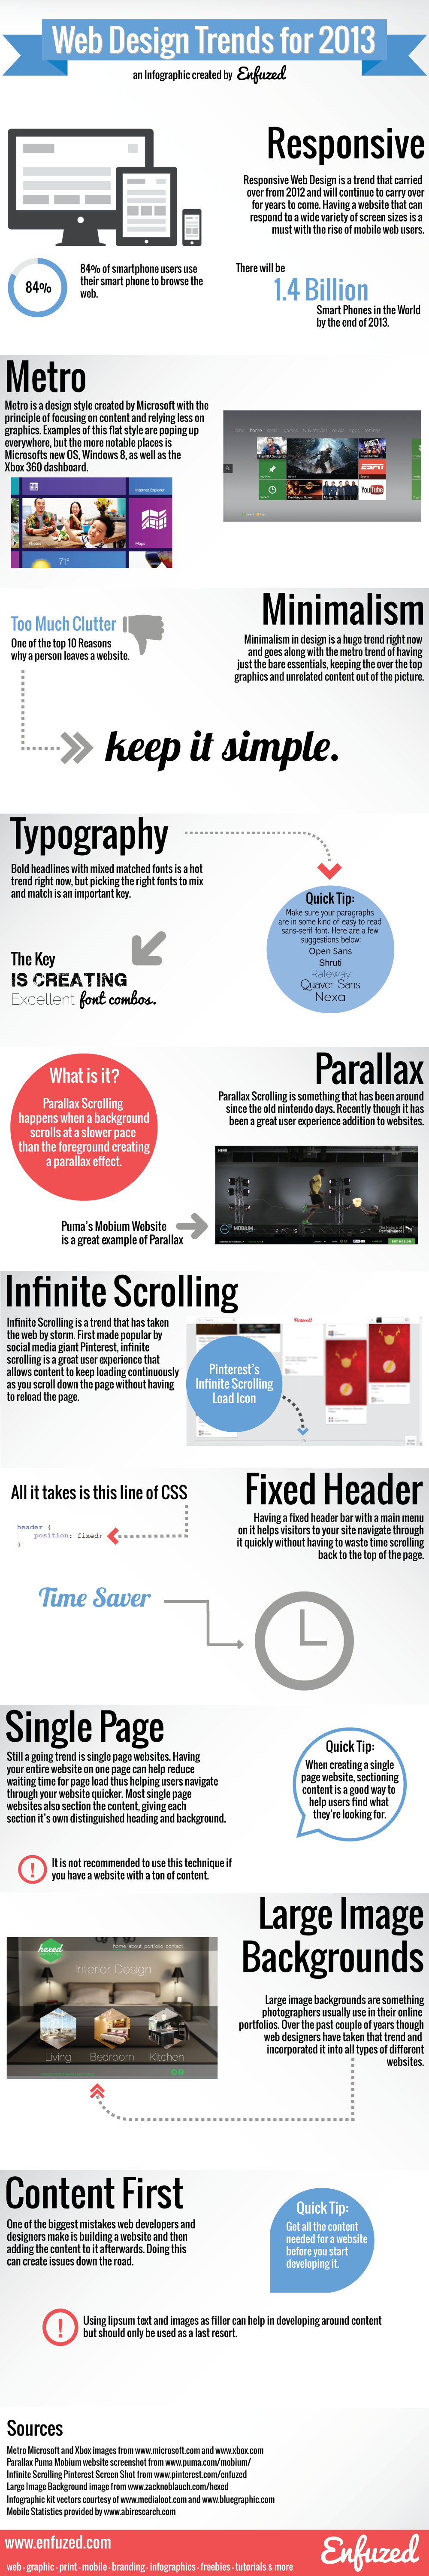 2013-Web-Design-Trends-Infographic